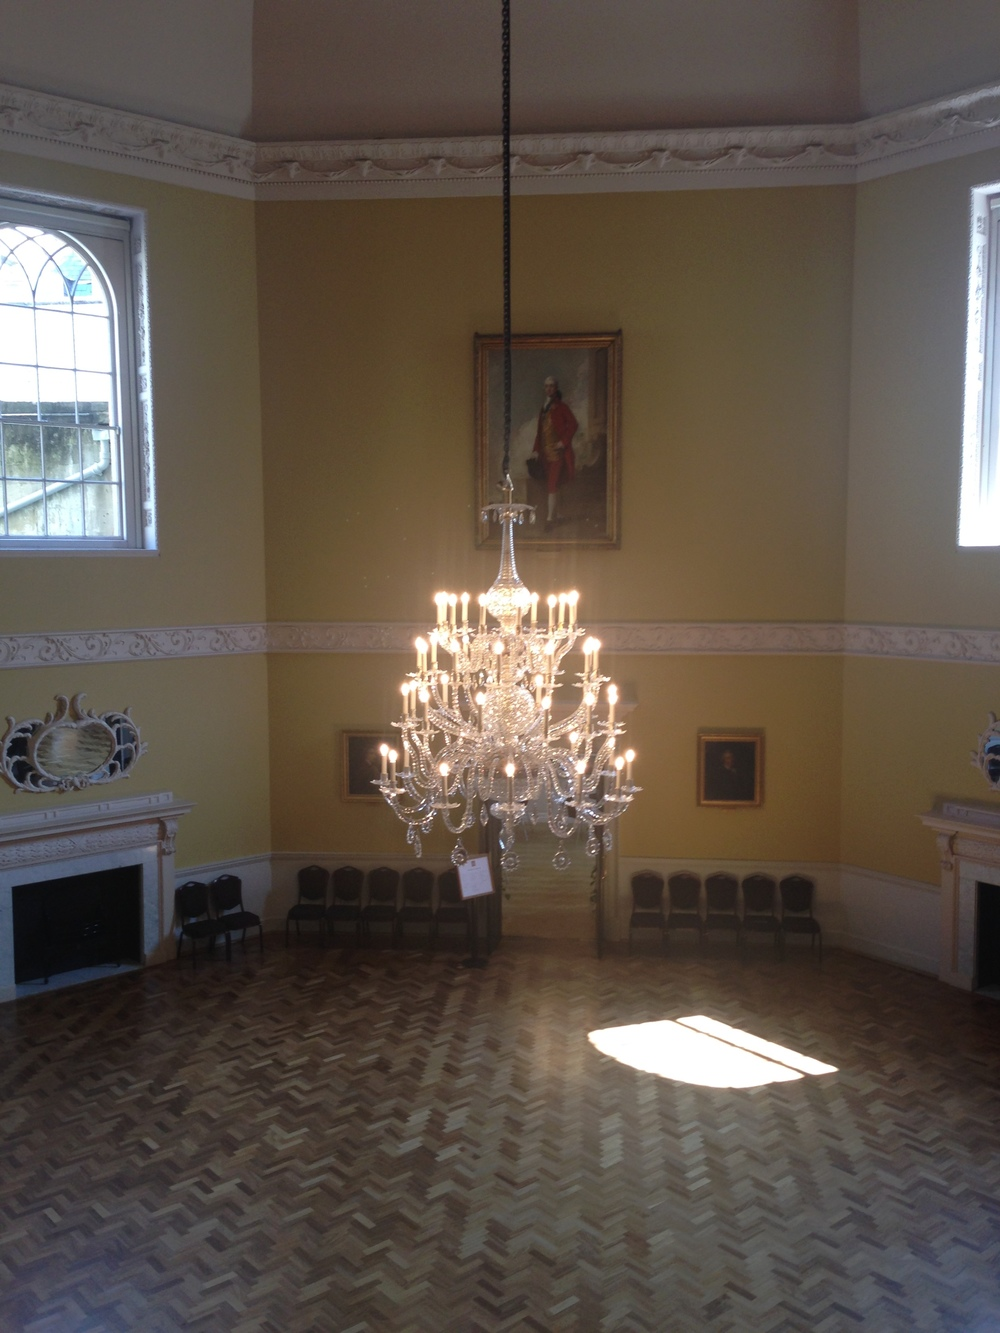 Another one of the Assembly Rooms.